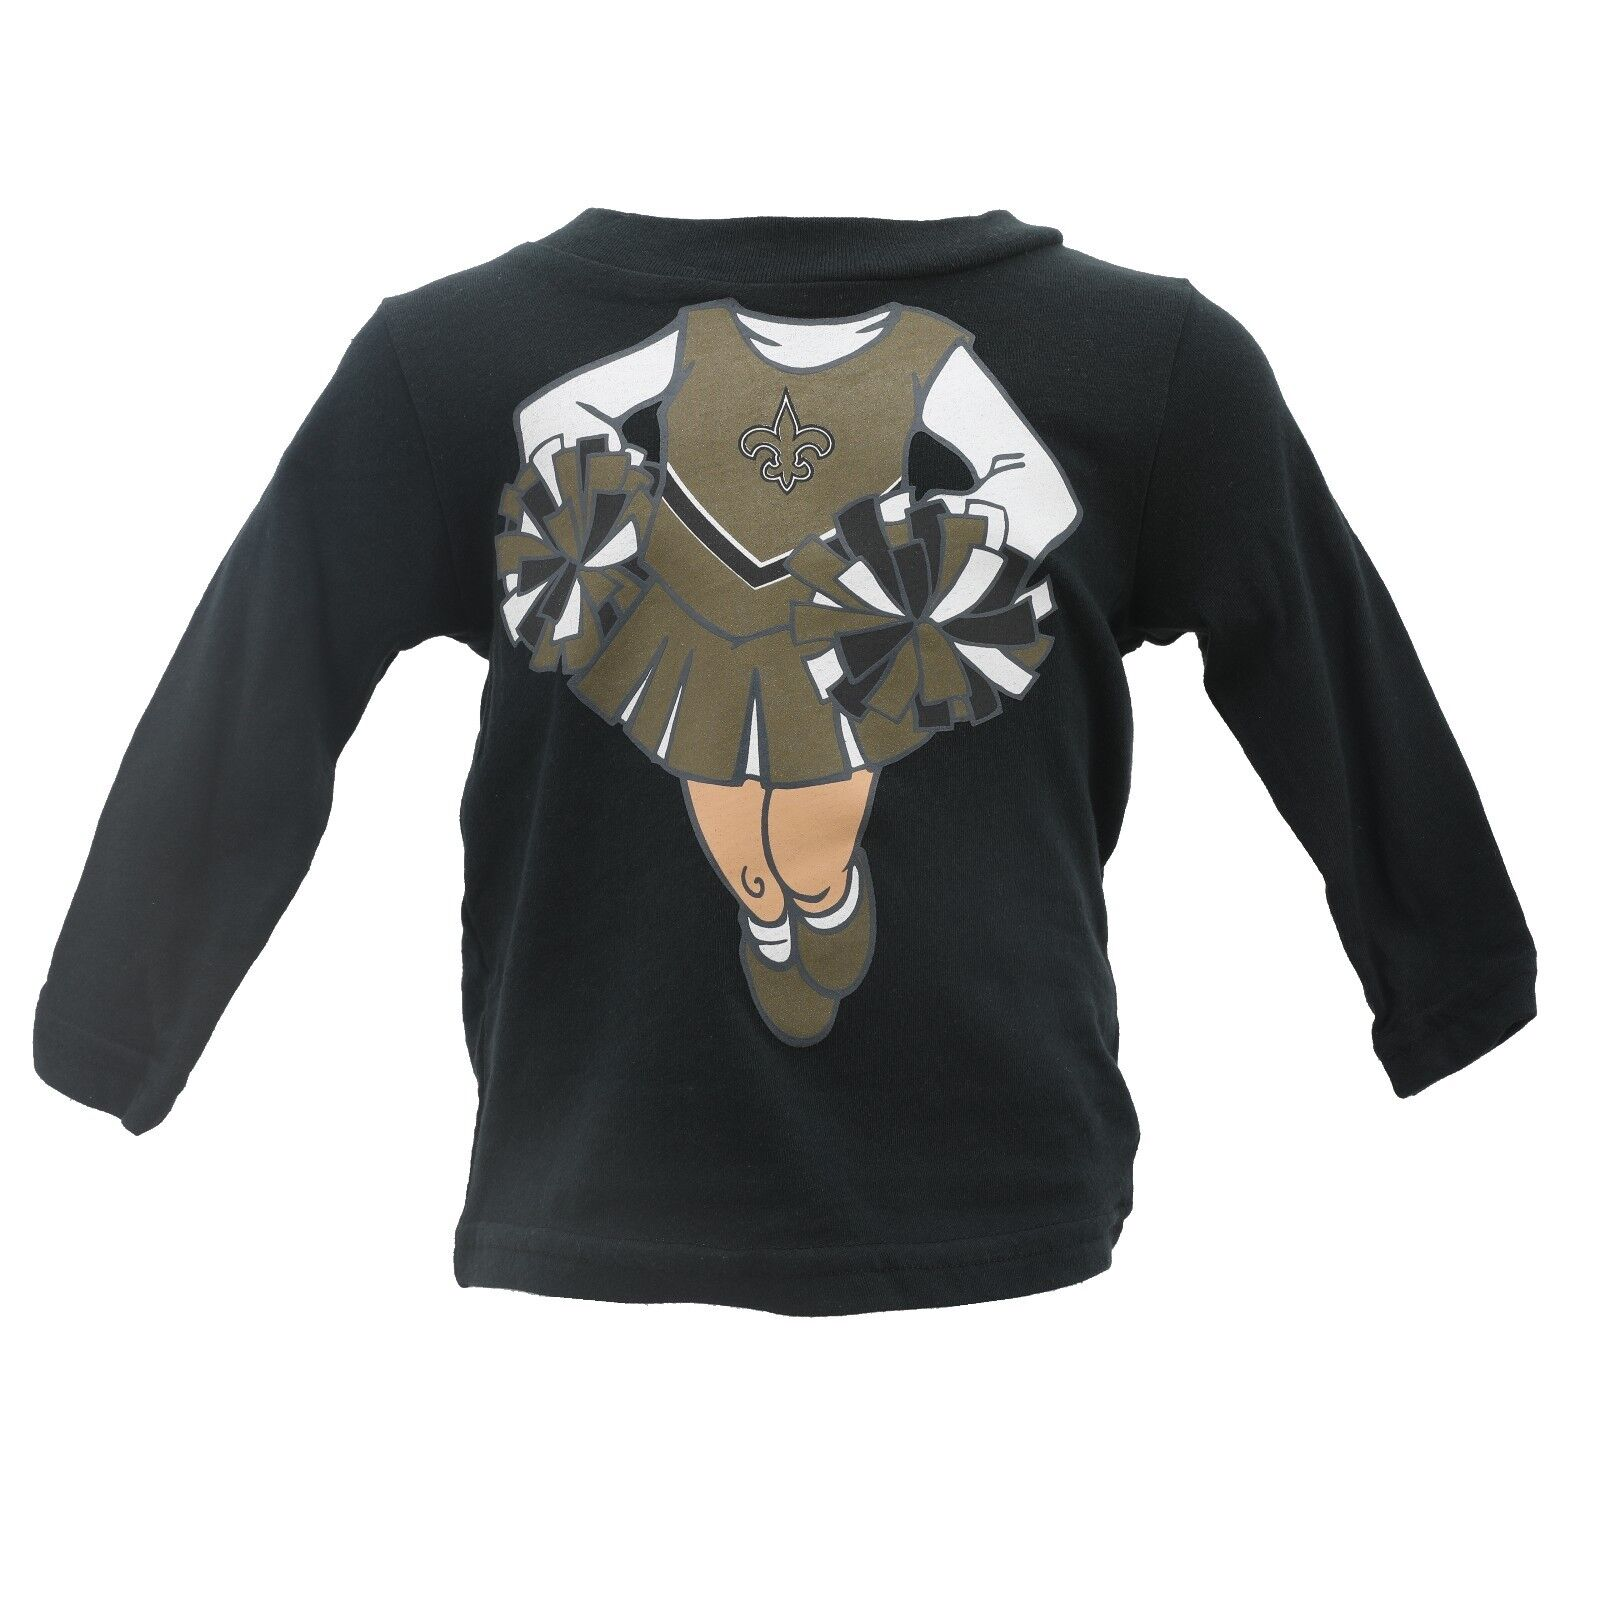 online store a62b8 6dca3 Details about New Orleans Saints NFL Official Infant Girls Long Sleeve  Shirt New with Tags